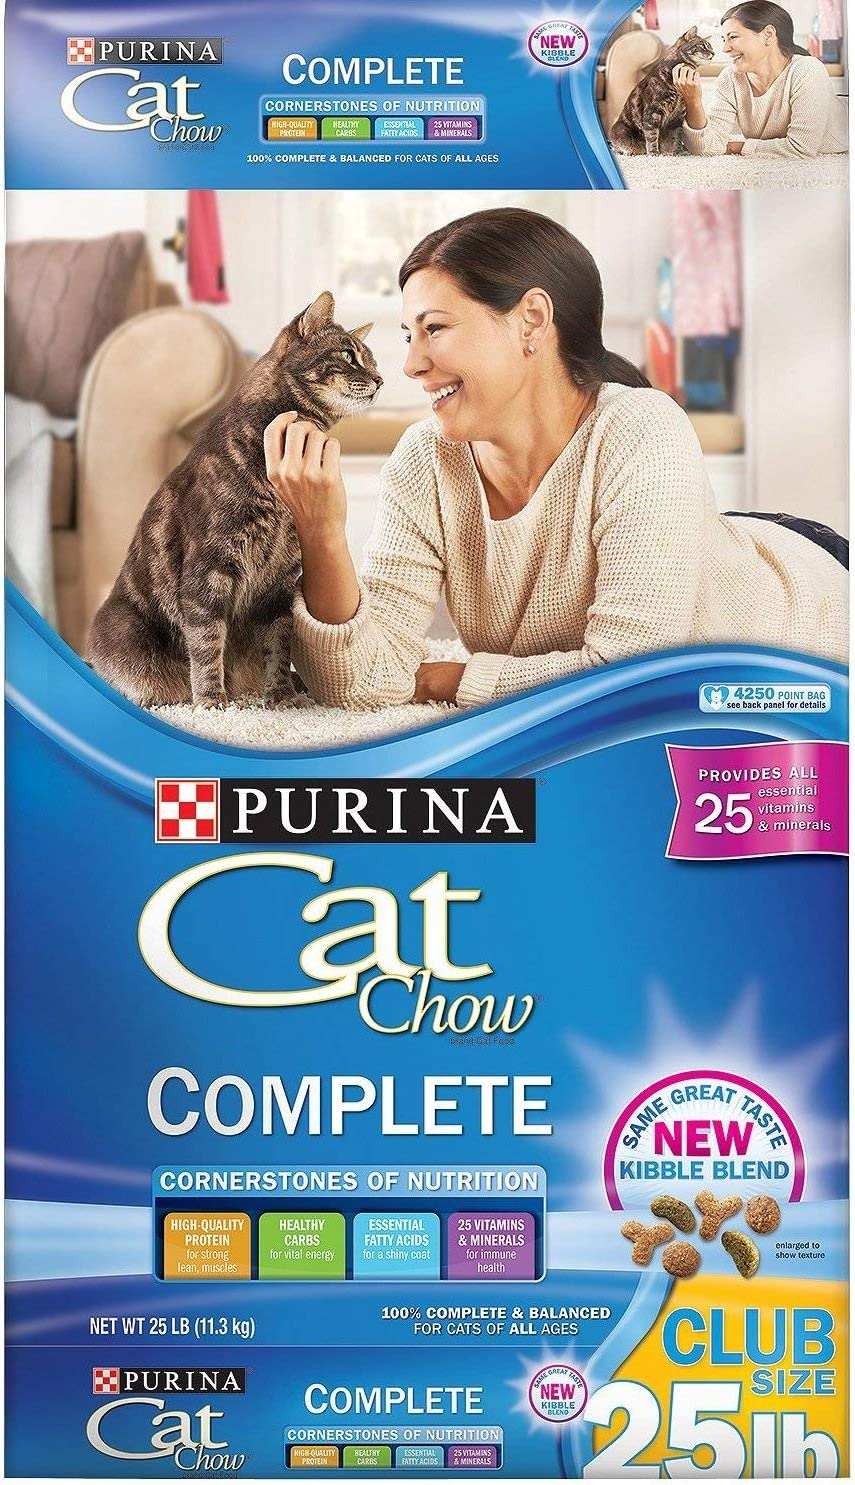 Purina Cat Chow Complete Dry Cat Food, 25 lb. Bag